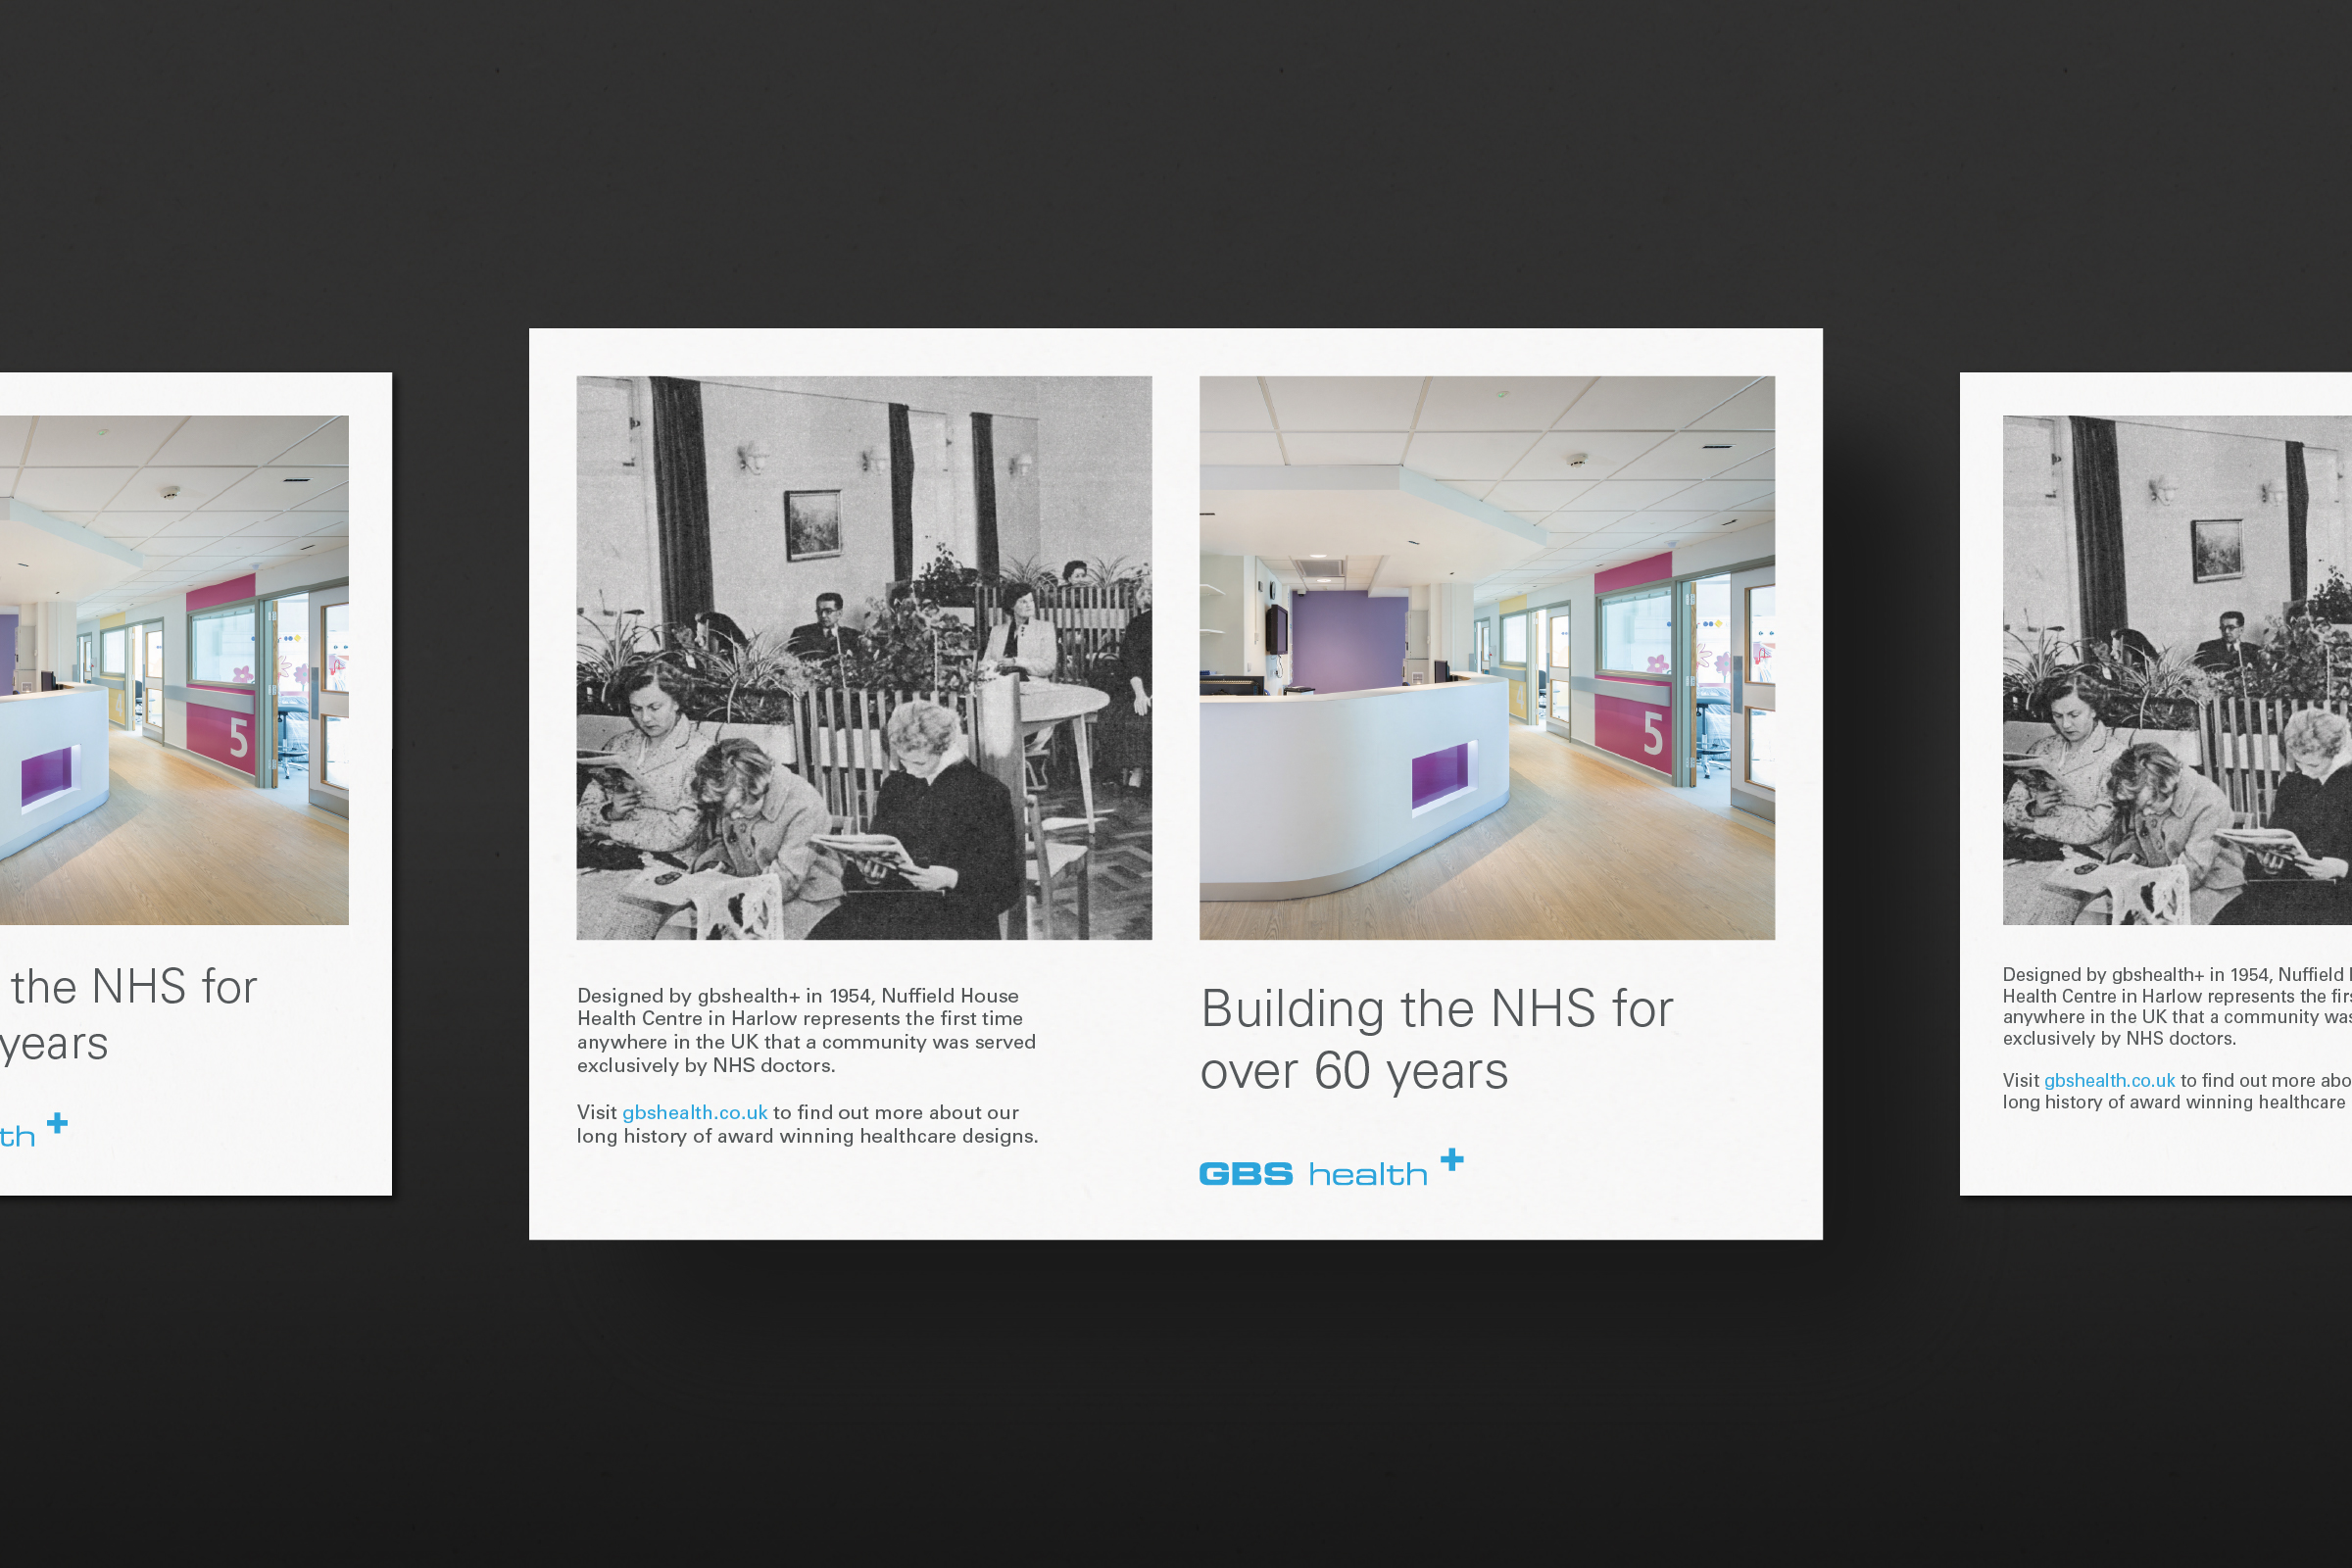 Flyer design showing architectural work for the NHS